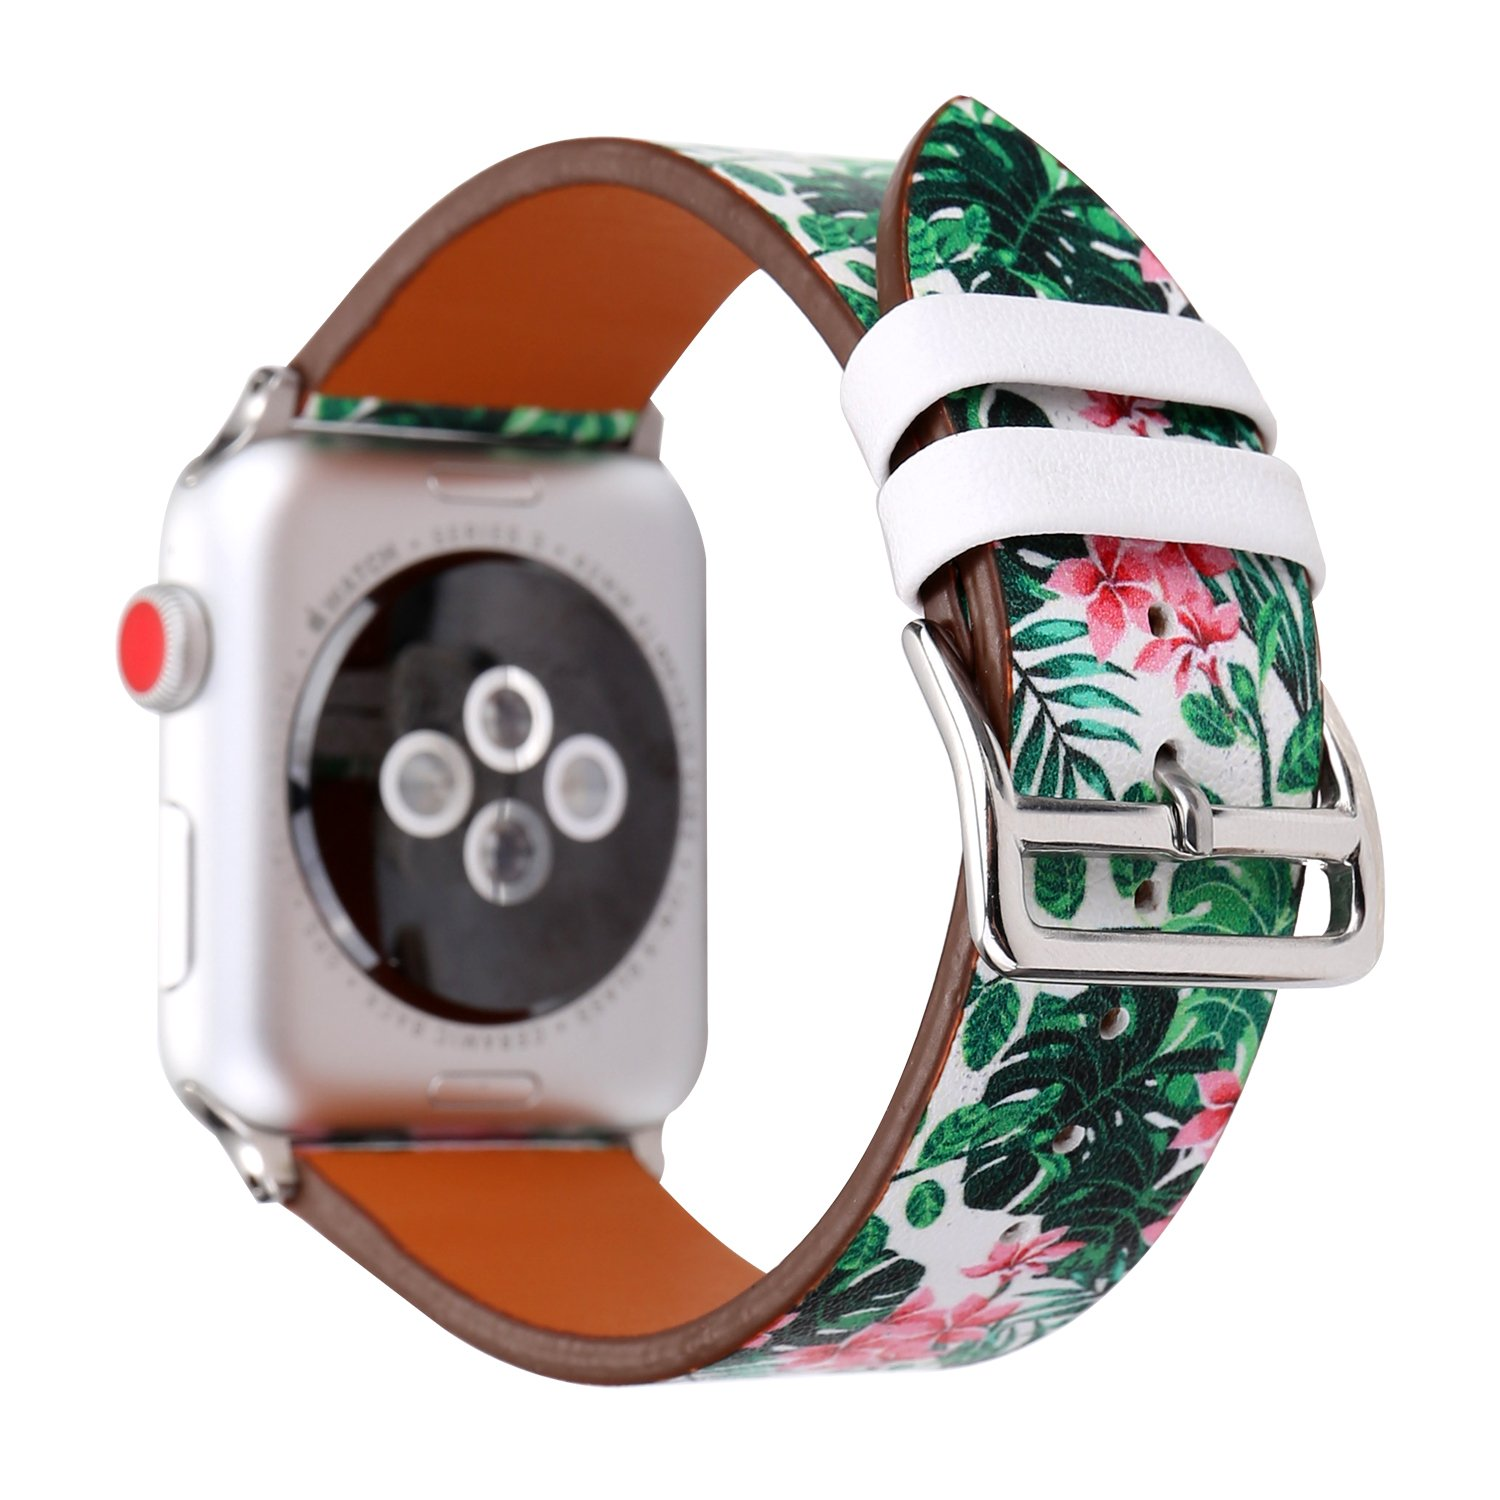 Flower Design Strap for iWatch,38mm 42mm Floral Pattern Printed Leather Wrist Band Apple Watch Link Bracelet for Apple Watch Smartwatch Fitness Tracker Series 2 Series 1 Version (Fresh Style 38mm)